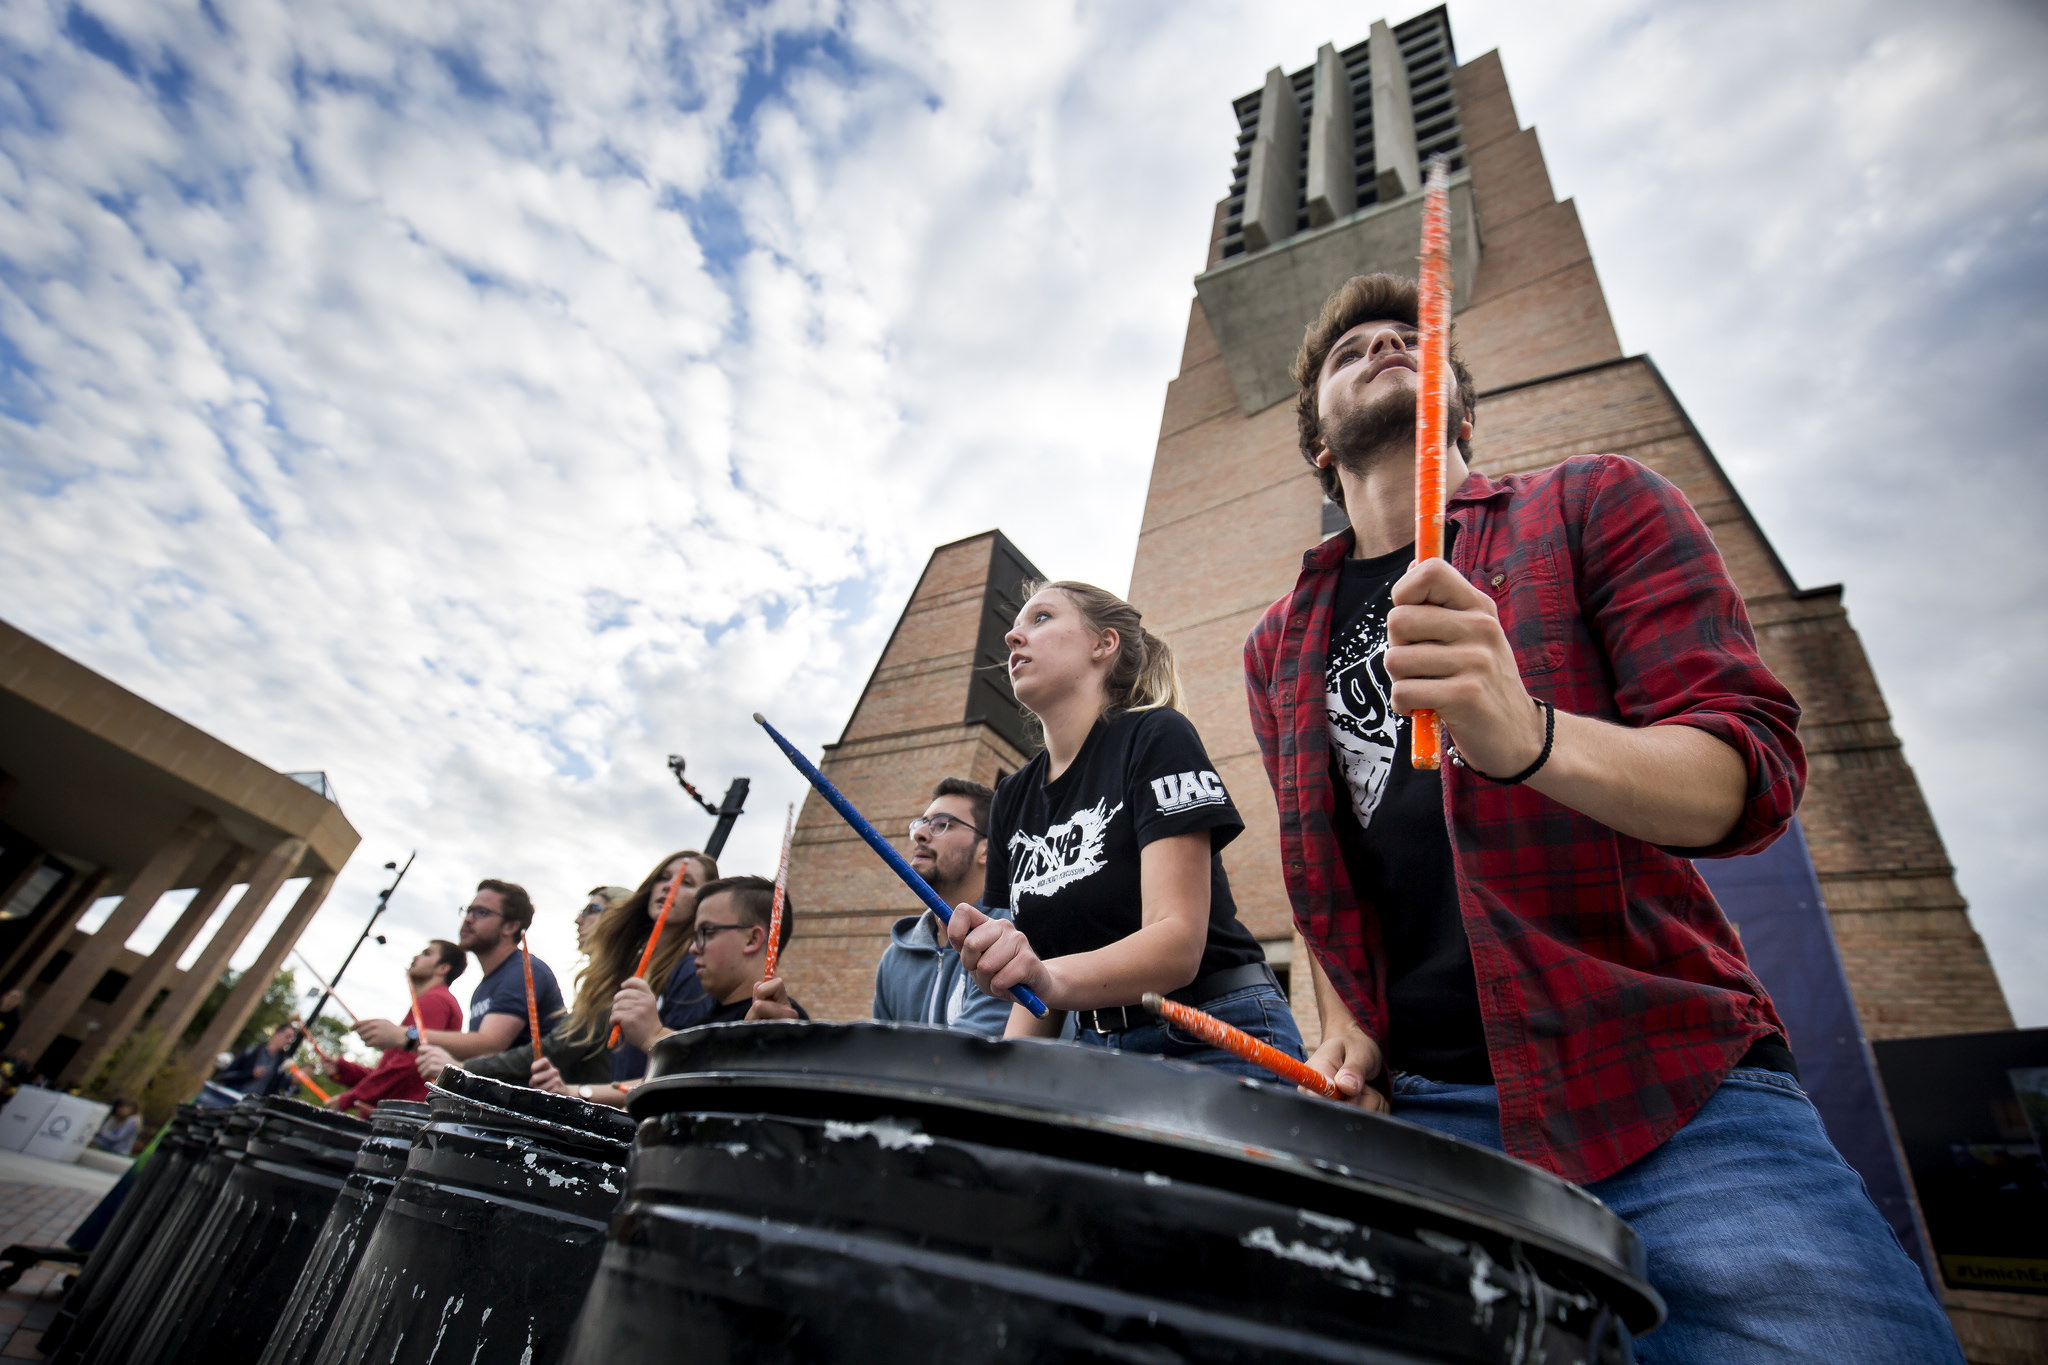 A photograph of a student performance group drumming.